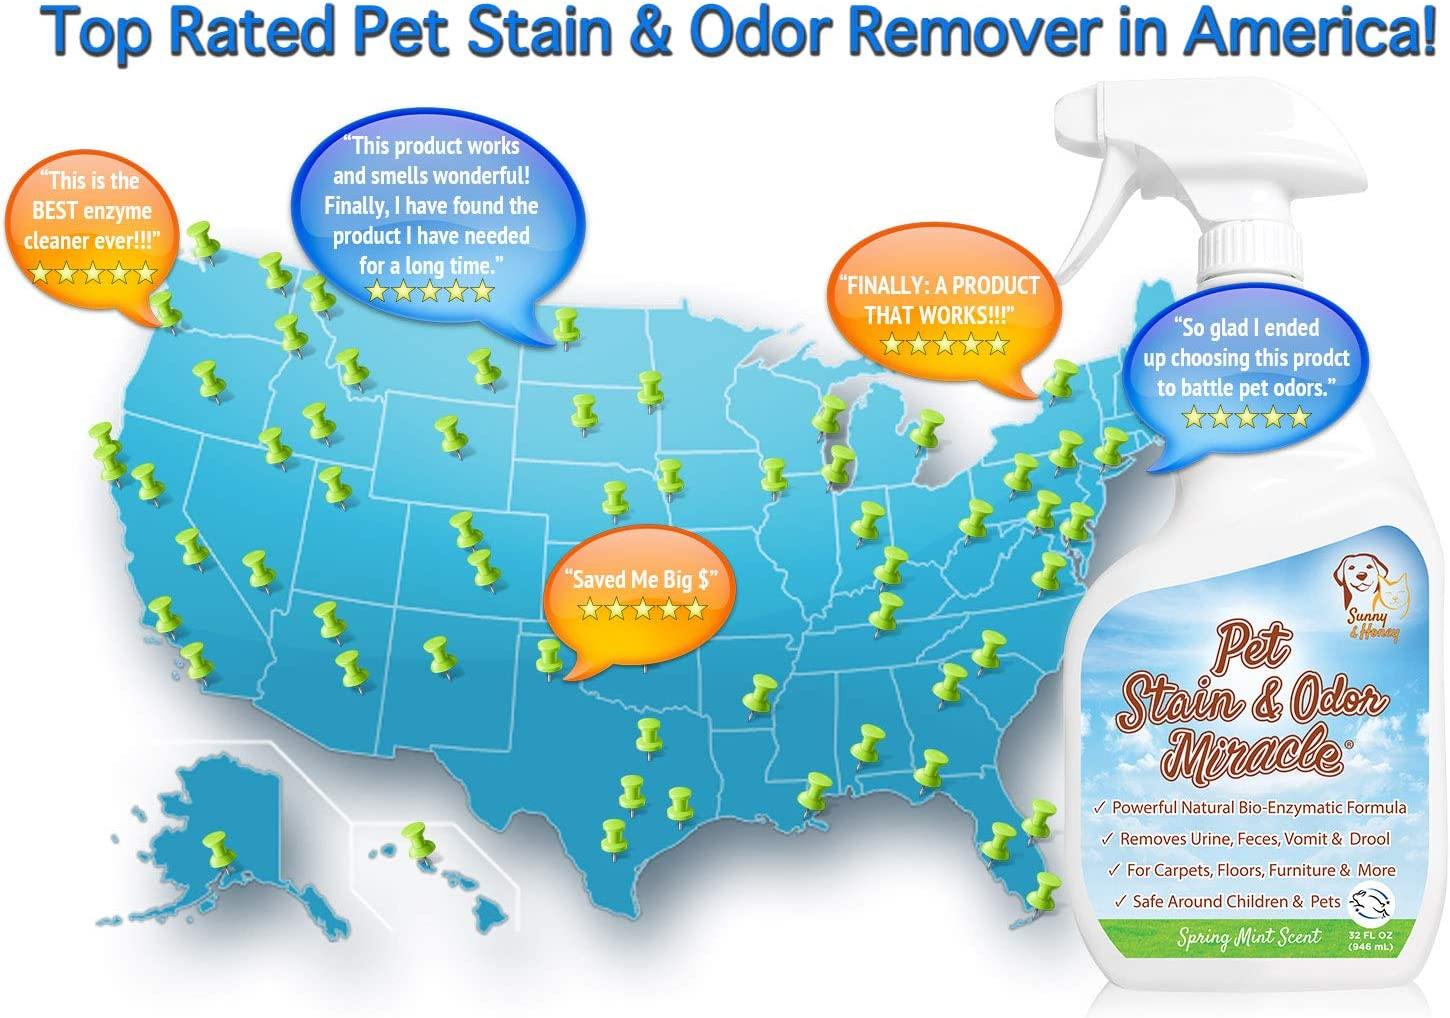 Pet Stain & Odor Miracle - The Best Enzyme Cleaner for Dog Urine Cat Pee Feces Vomit, Enzymatic Solution Cleans Carpet Rug Car Upholstery Couch Mattress Furniture, Natural Eliminator (S/M 32FL OZ): Kitchen & Dining